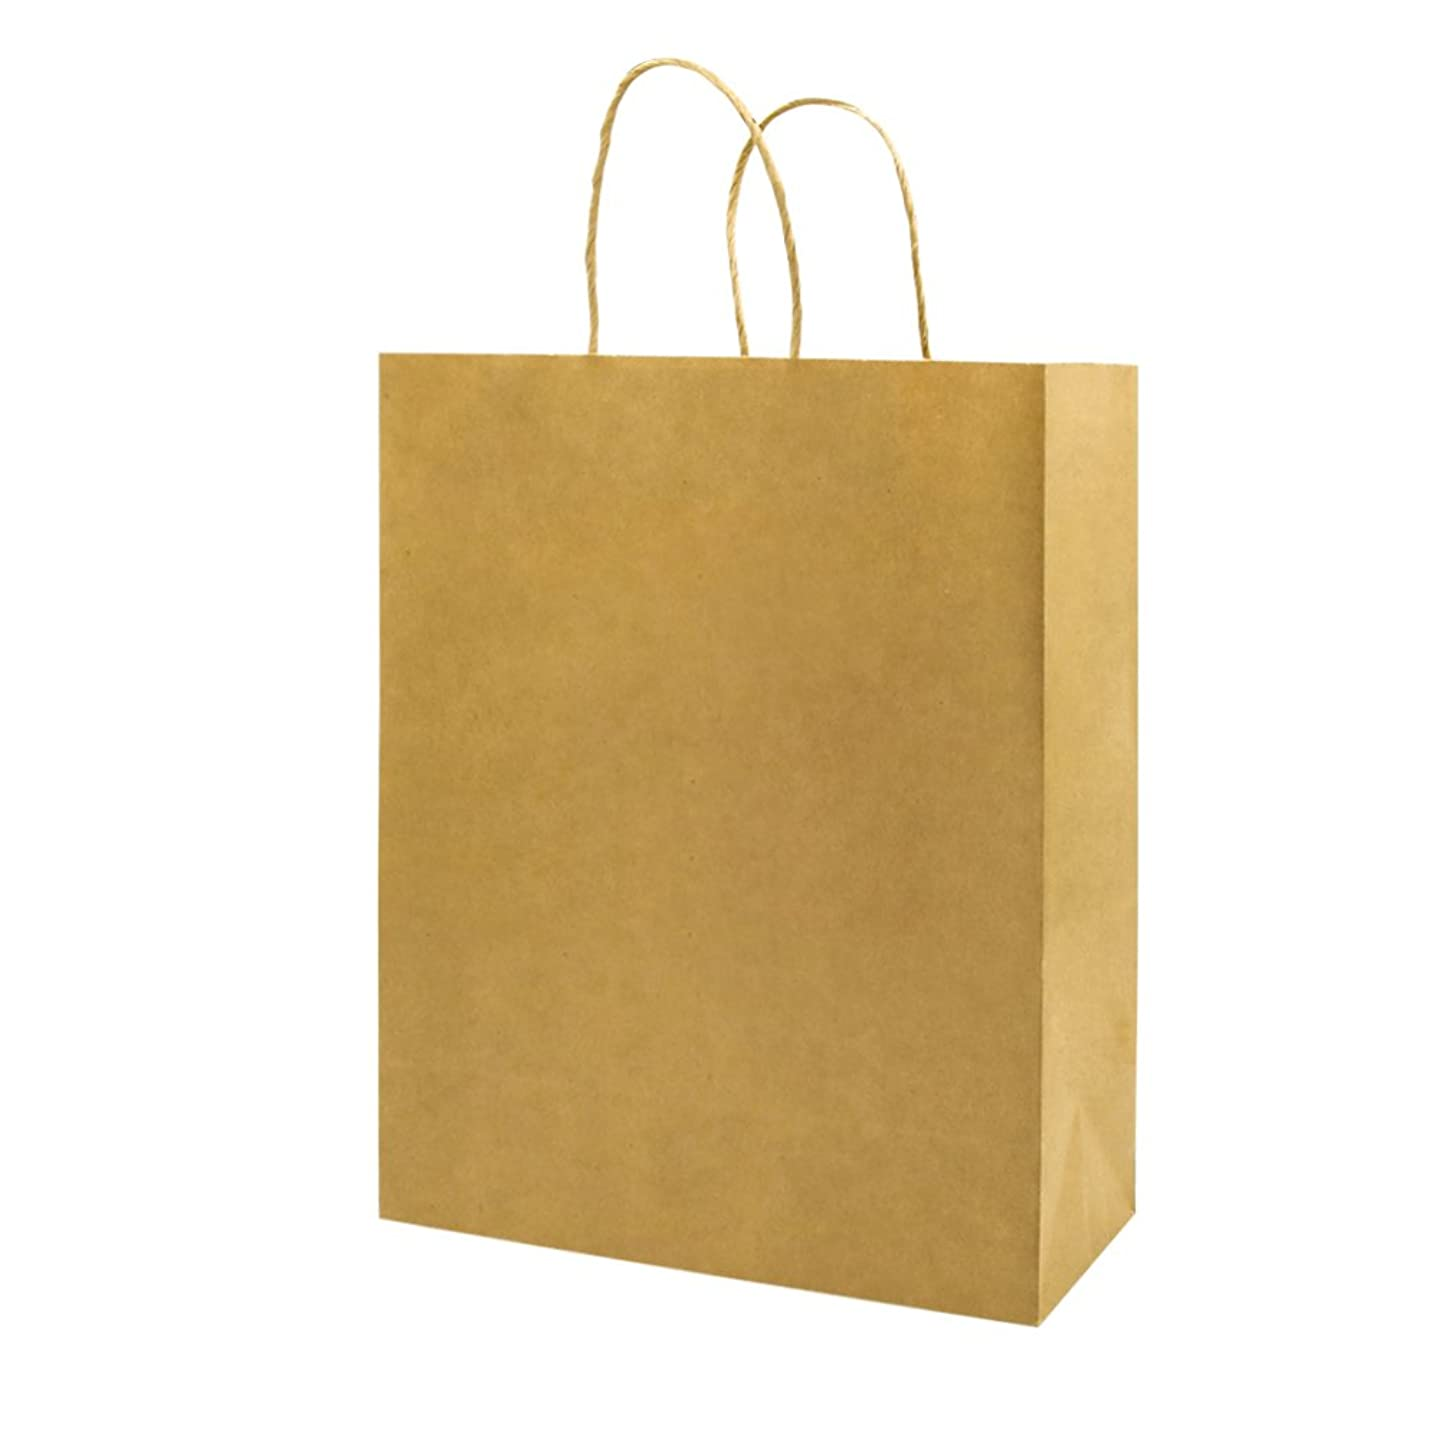 bagmad Sturdy Paper Bags with Handles Bulk,10x5x13 Inch 50 Pack, Large Kraft Paper Shopping Bags,Gift Natural Party Retail Craft Brown Mechandise Take Out Bags (50Pcs Count)